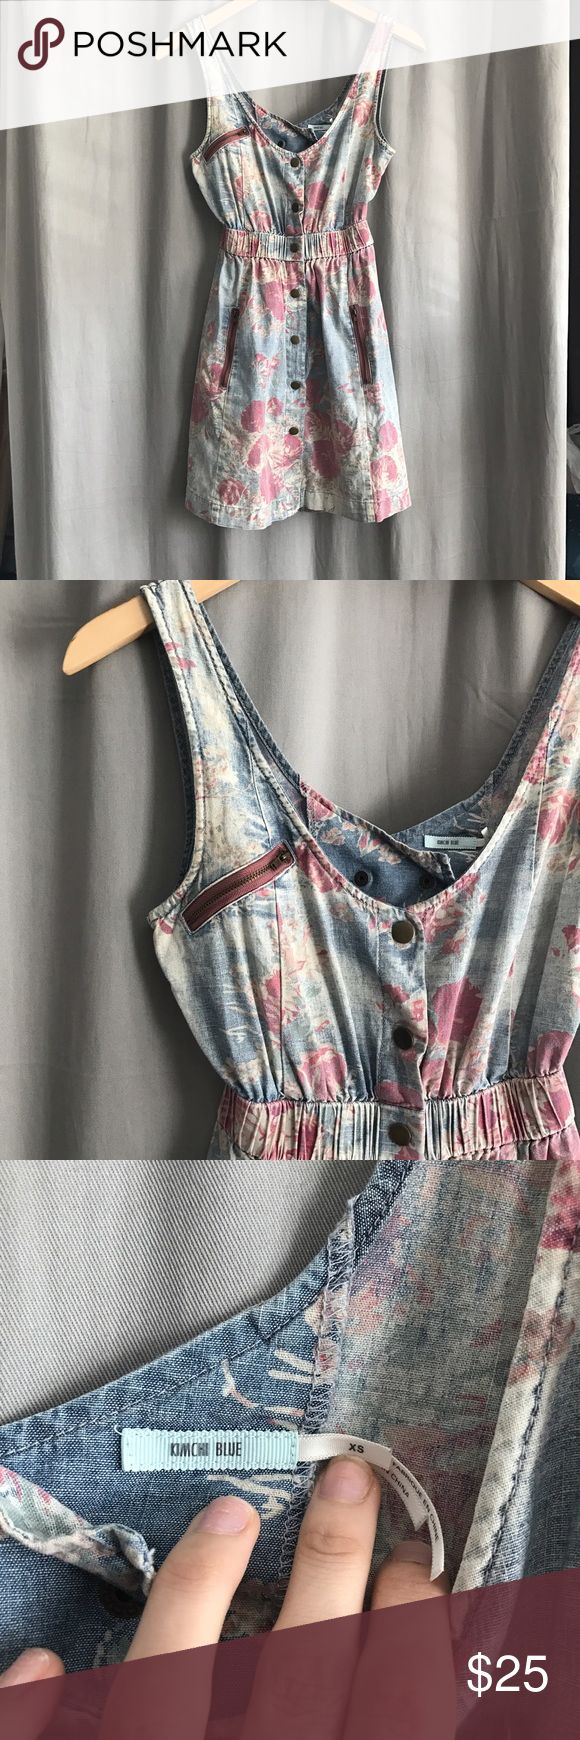 Urban Outfitters • Denim Floral Dress Urban Outfitters Kimchi Blue denim button down dress with all over Floral print. Zipper accents and Open Back. Thick elastic waist. So cute on! Only flaw is a small hole on the left strap (see photo) Urban Outfitters Dresses Mini